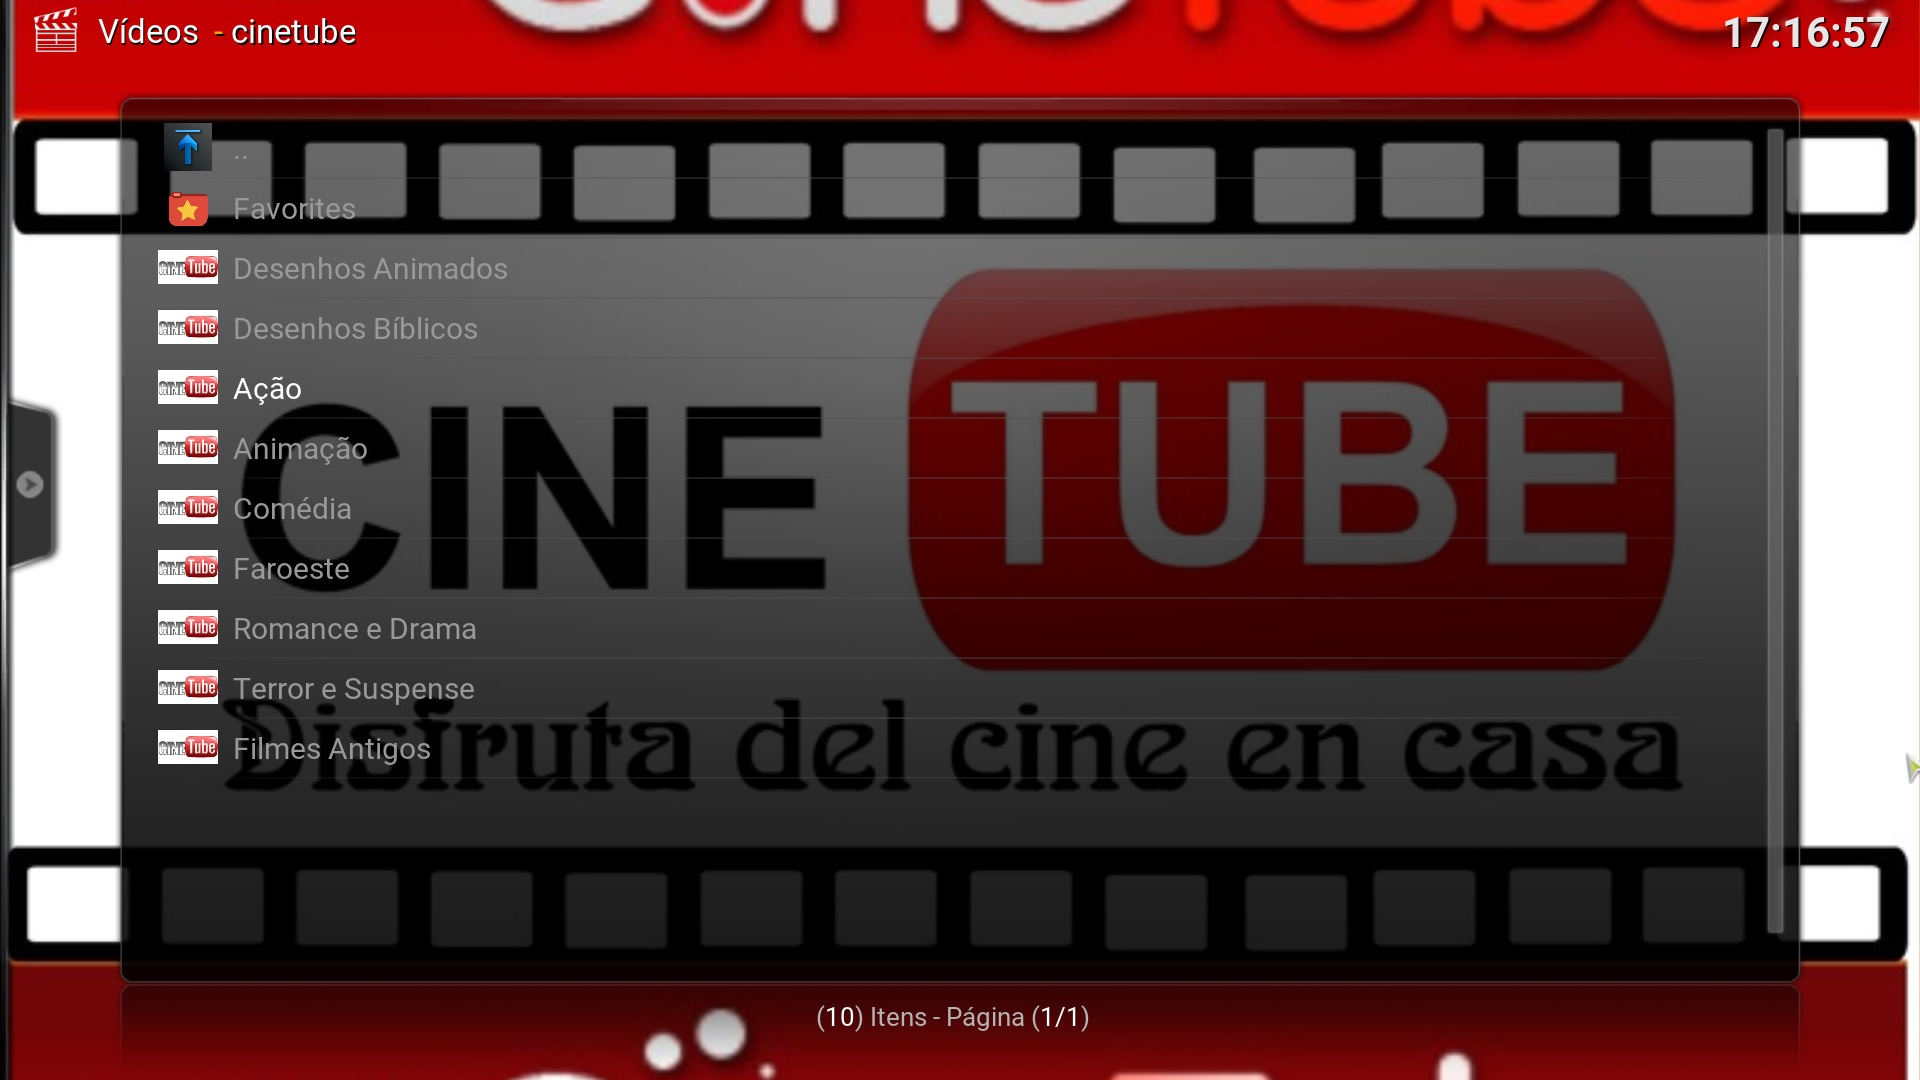 Categorias Cinetube